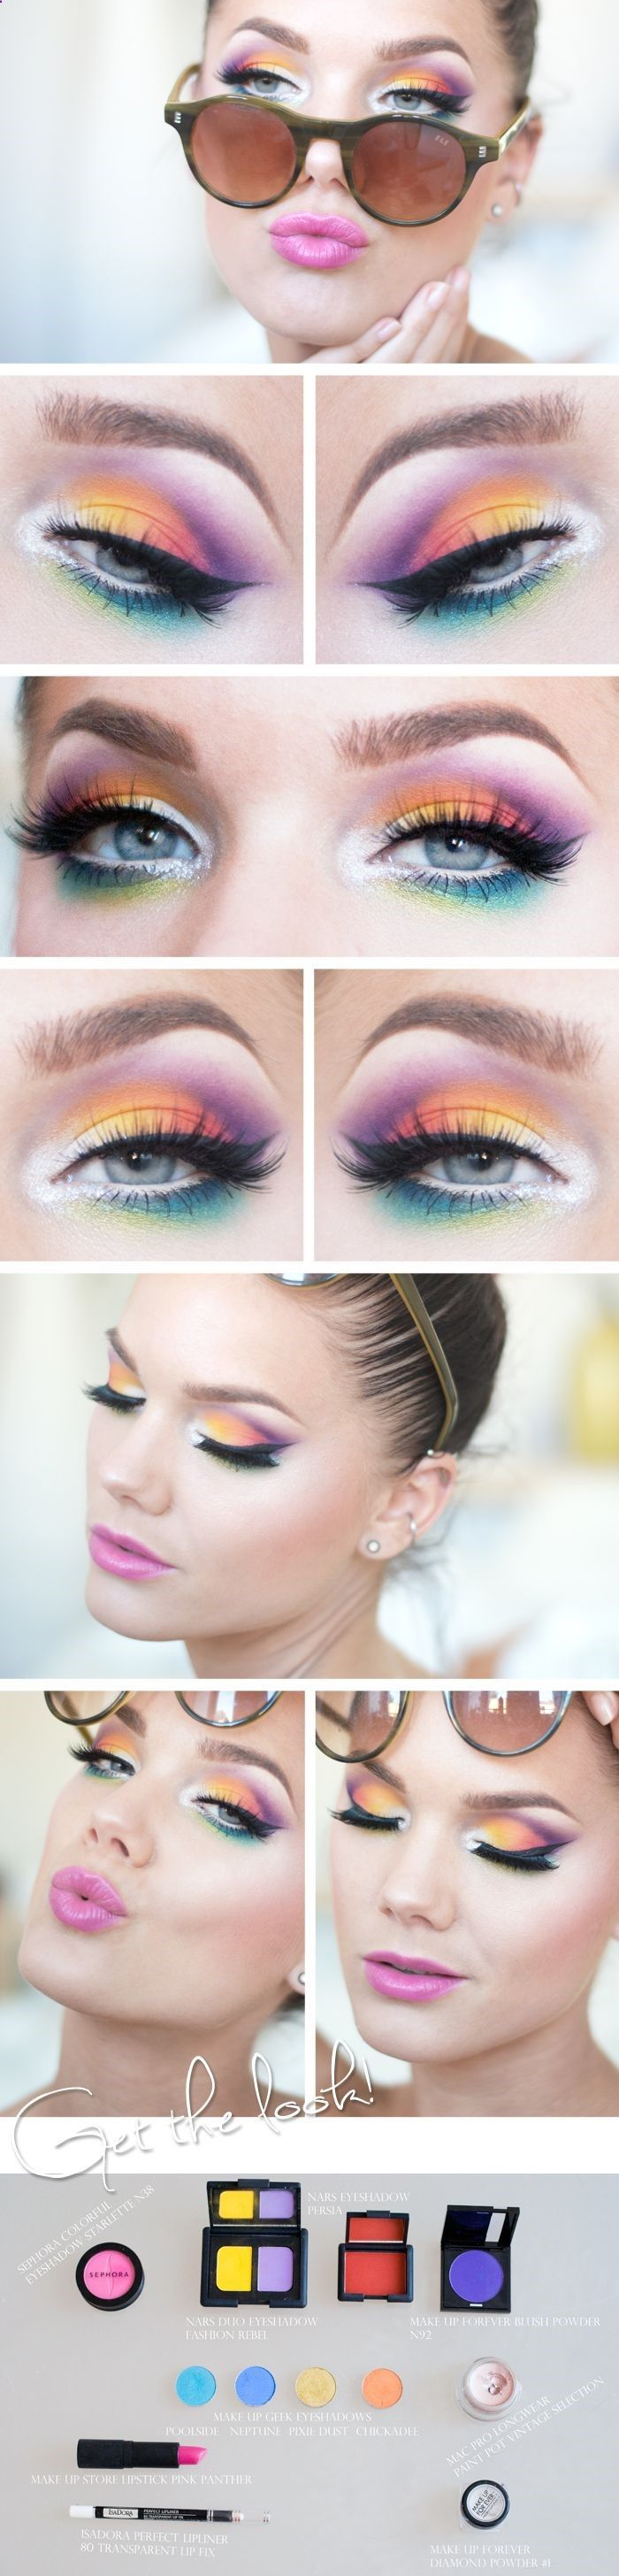 Todays Look : Like a Rainbow -Linda Hallberg (a beautiful array of colors very playful, perfect for summer,with a bright yet not over the top pink lip.) 07/18/13